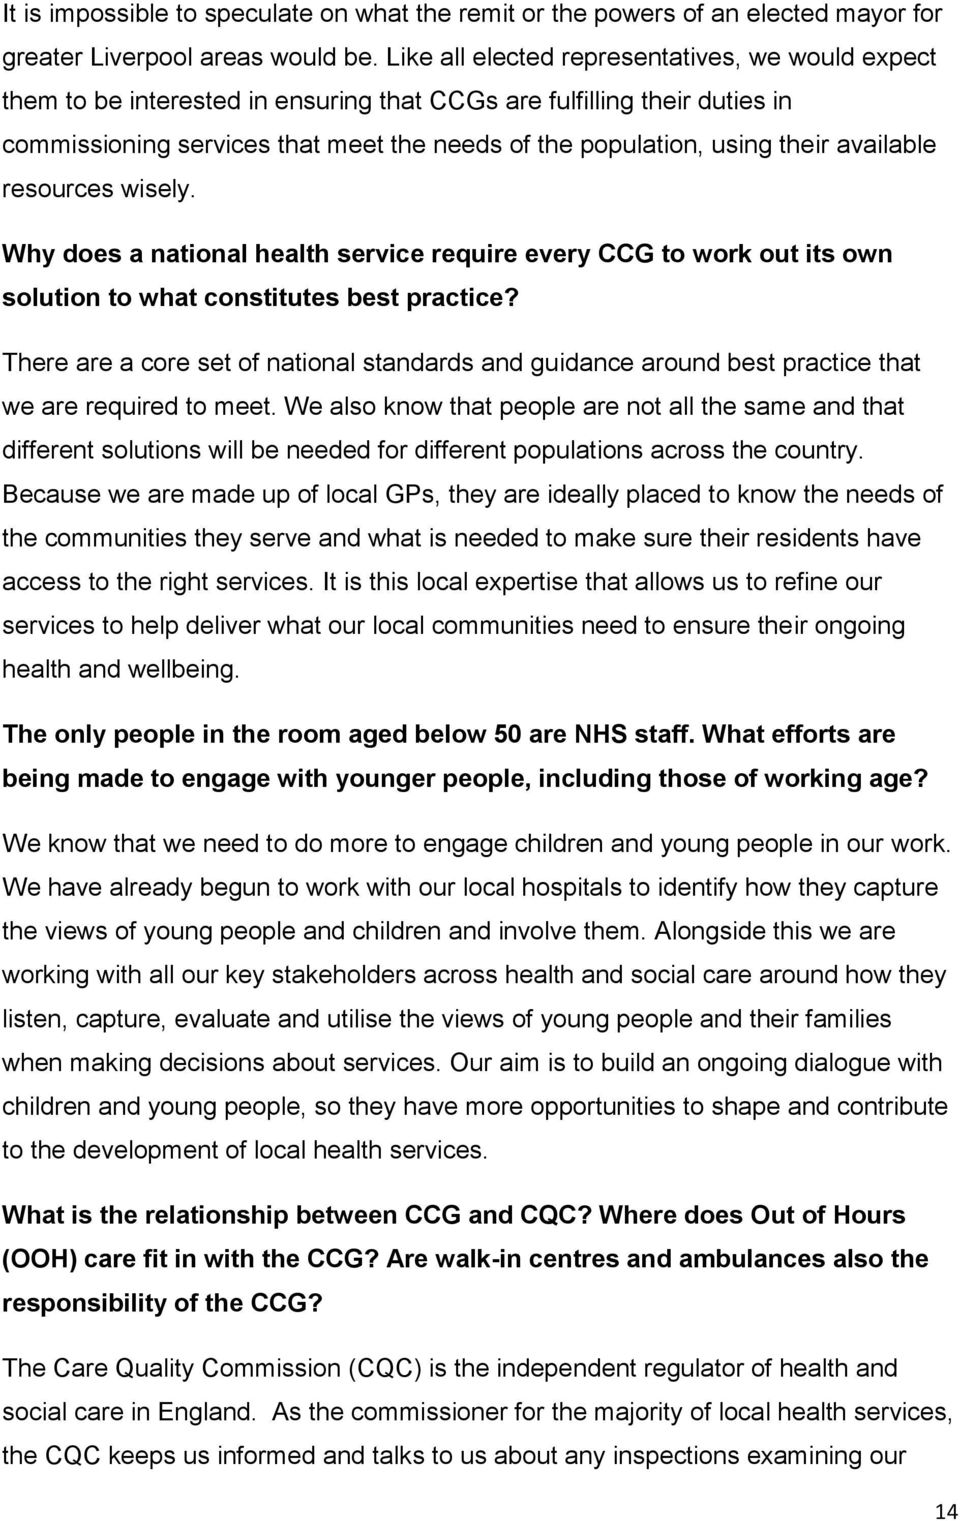 available resources wisely. Why does a national health service require every CCG to work out its own solution to what constitutes best practice?